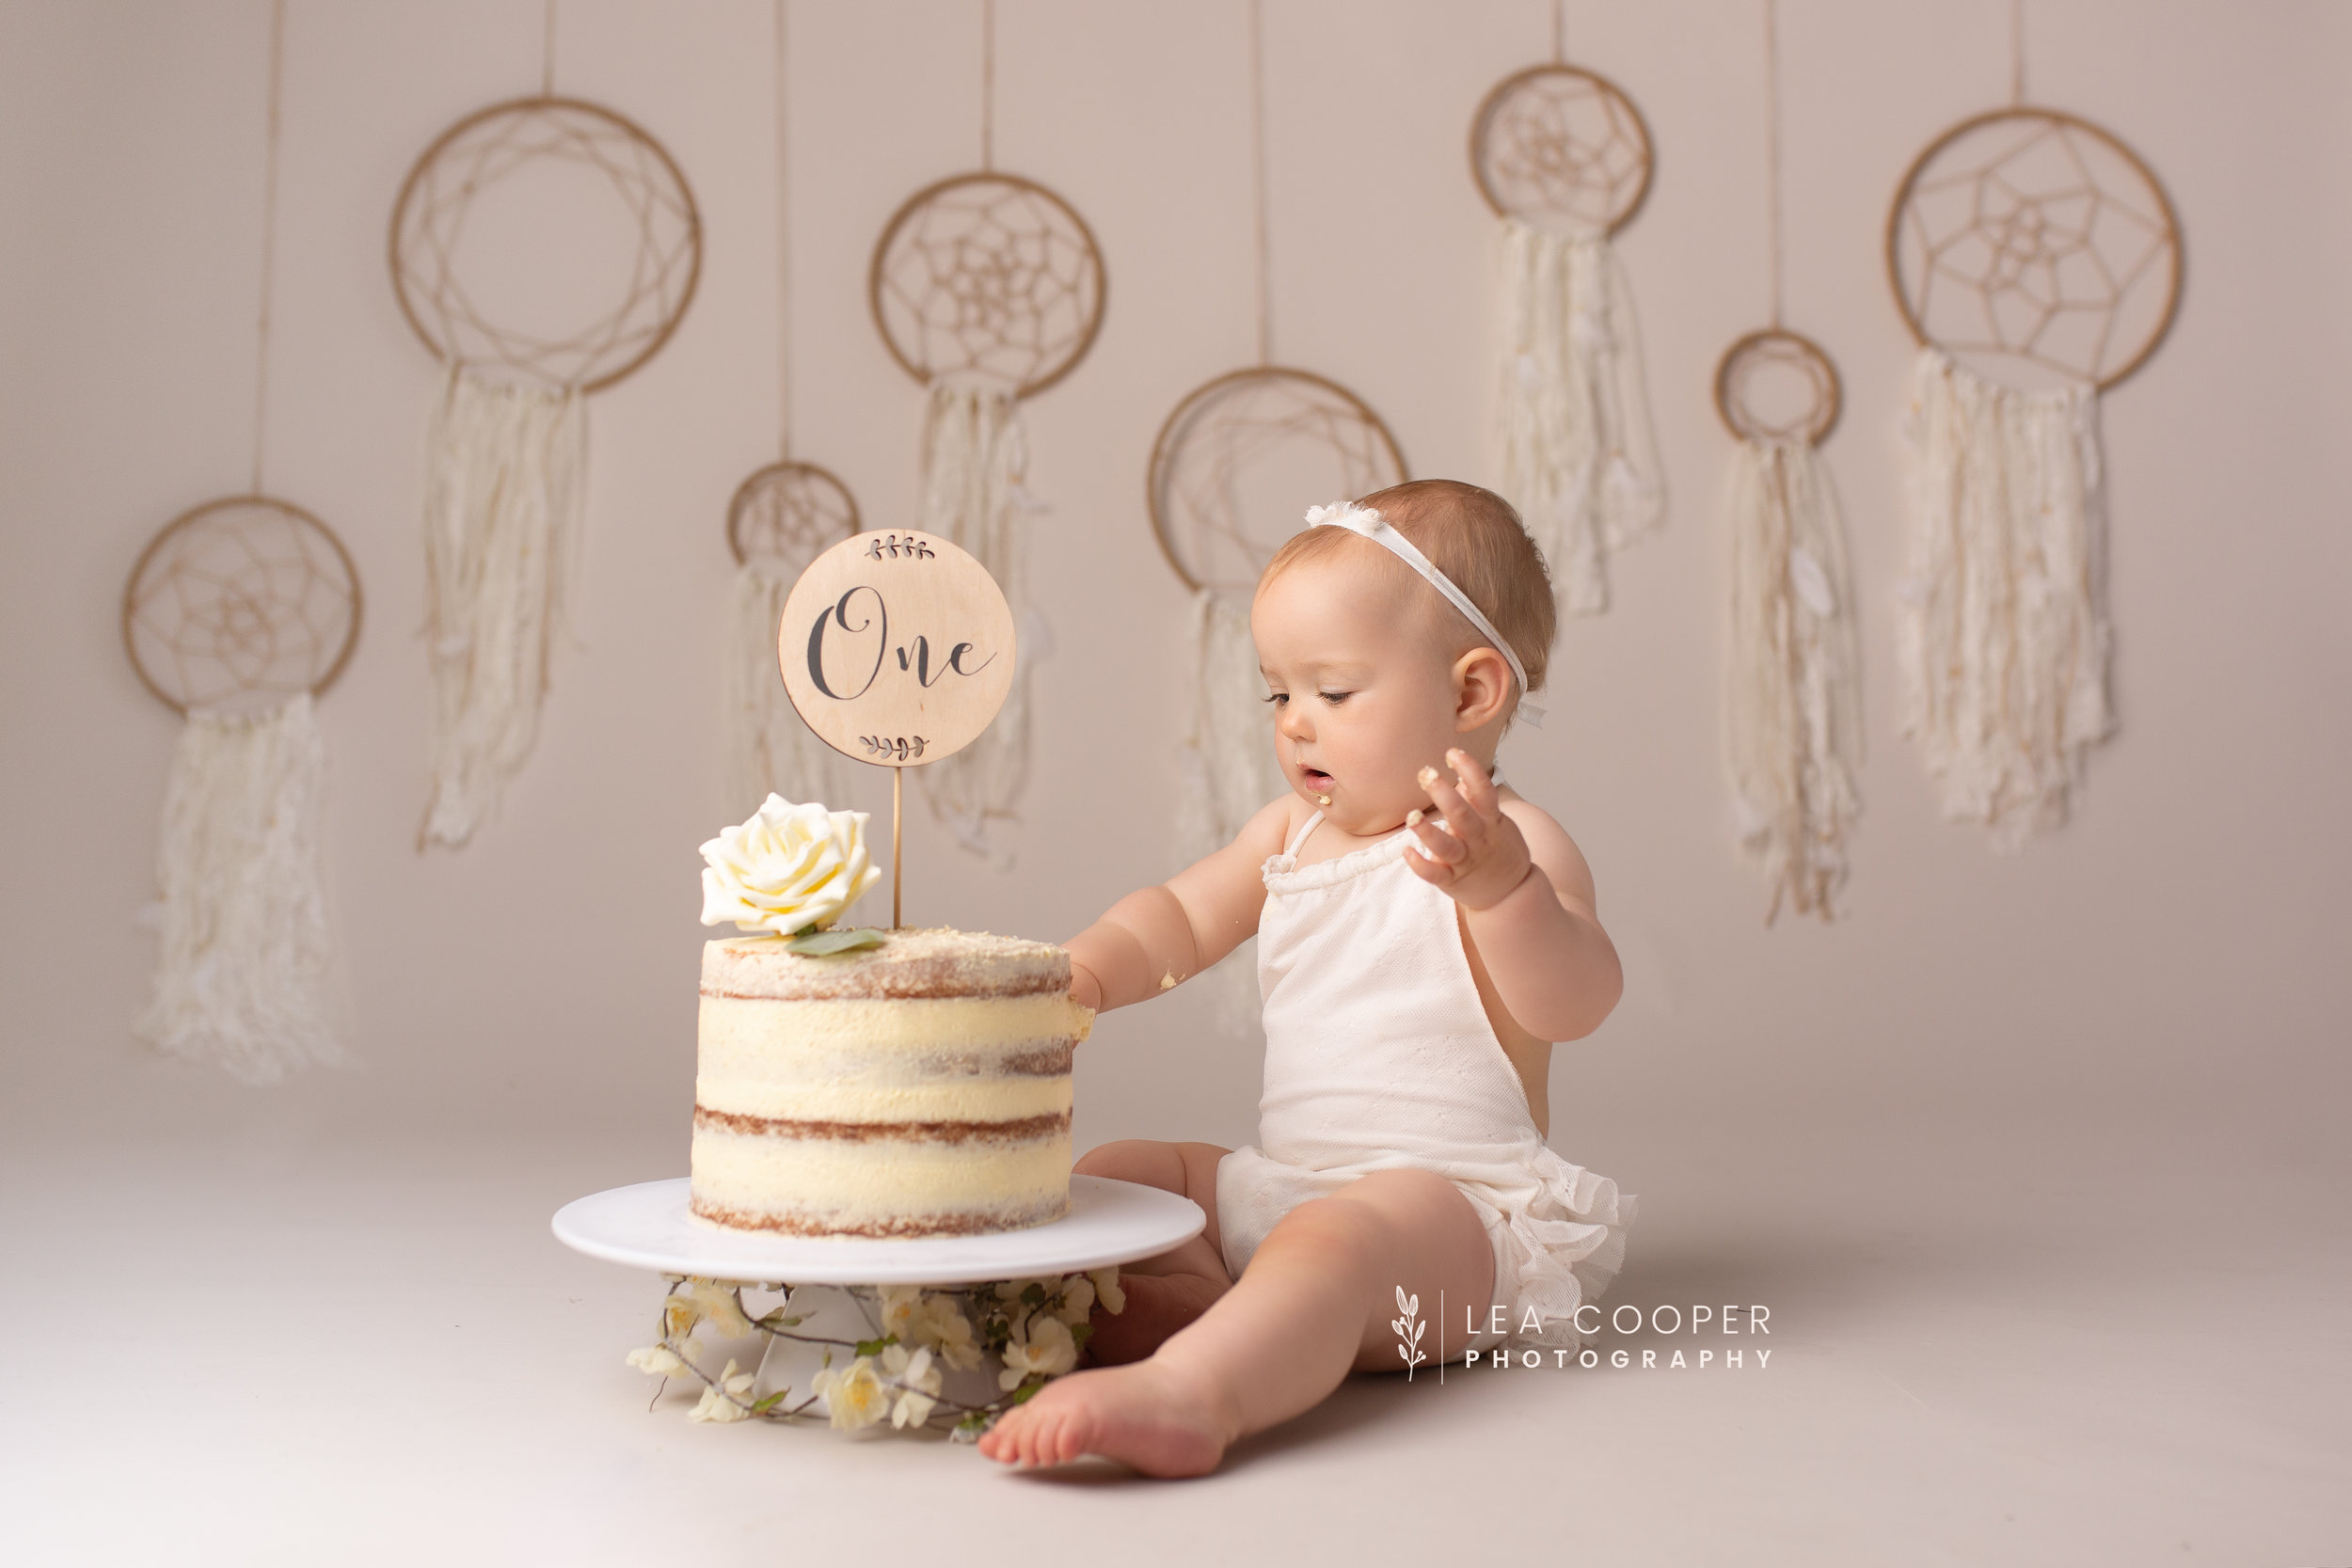 LEA-COOPER-PHOTOGRAPHY-CAKE-SMASH-SESSION-BIRTHDAY-PHOTOS-1ST-BIRTHDAY-SPLASH-SESSION-SMASH-SESSION-CHILDRENS-PHOTOGRAPHY-WILLENHALL-WOLVERHAMPTON-BIRMINGHAM-WEST-MIDLANDS-UK-7.jpg